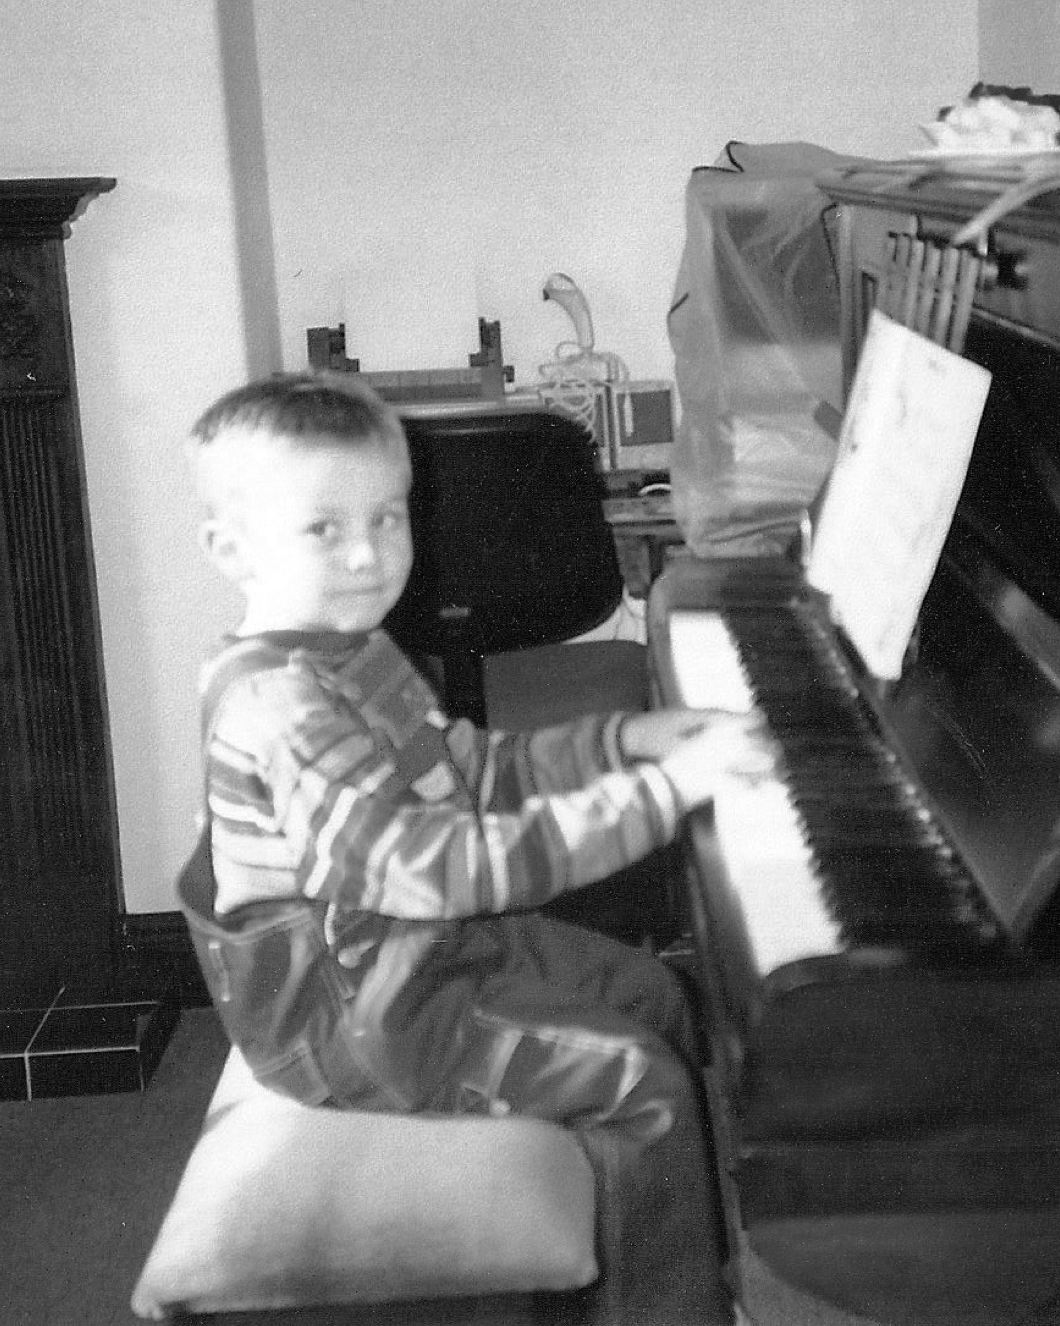 Jack Watkins as a child playing the piano